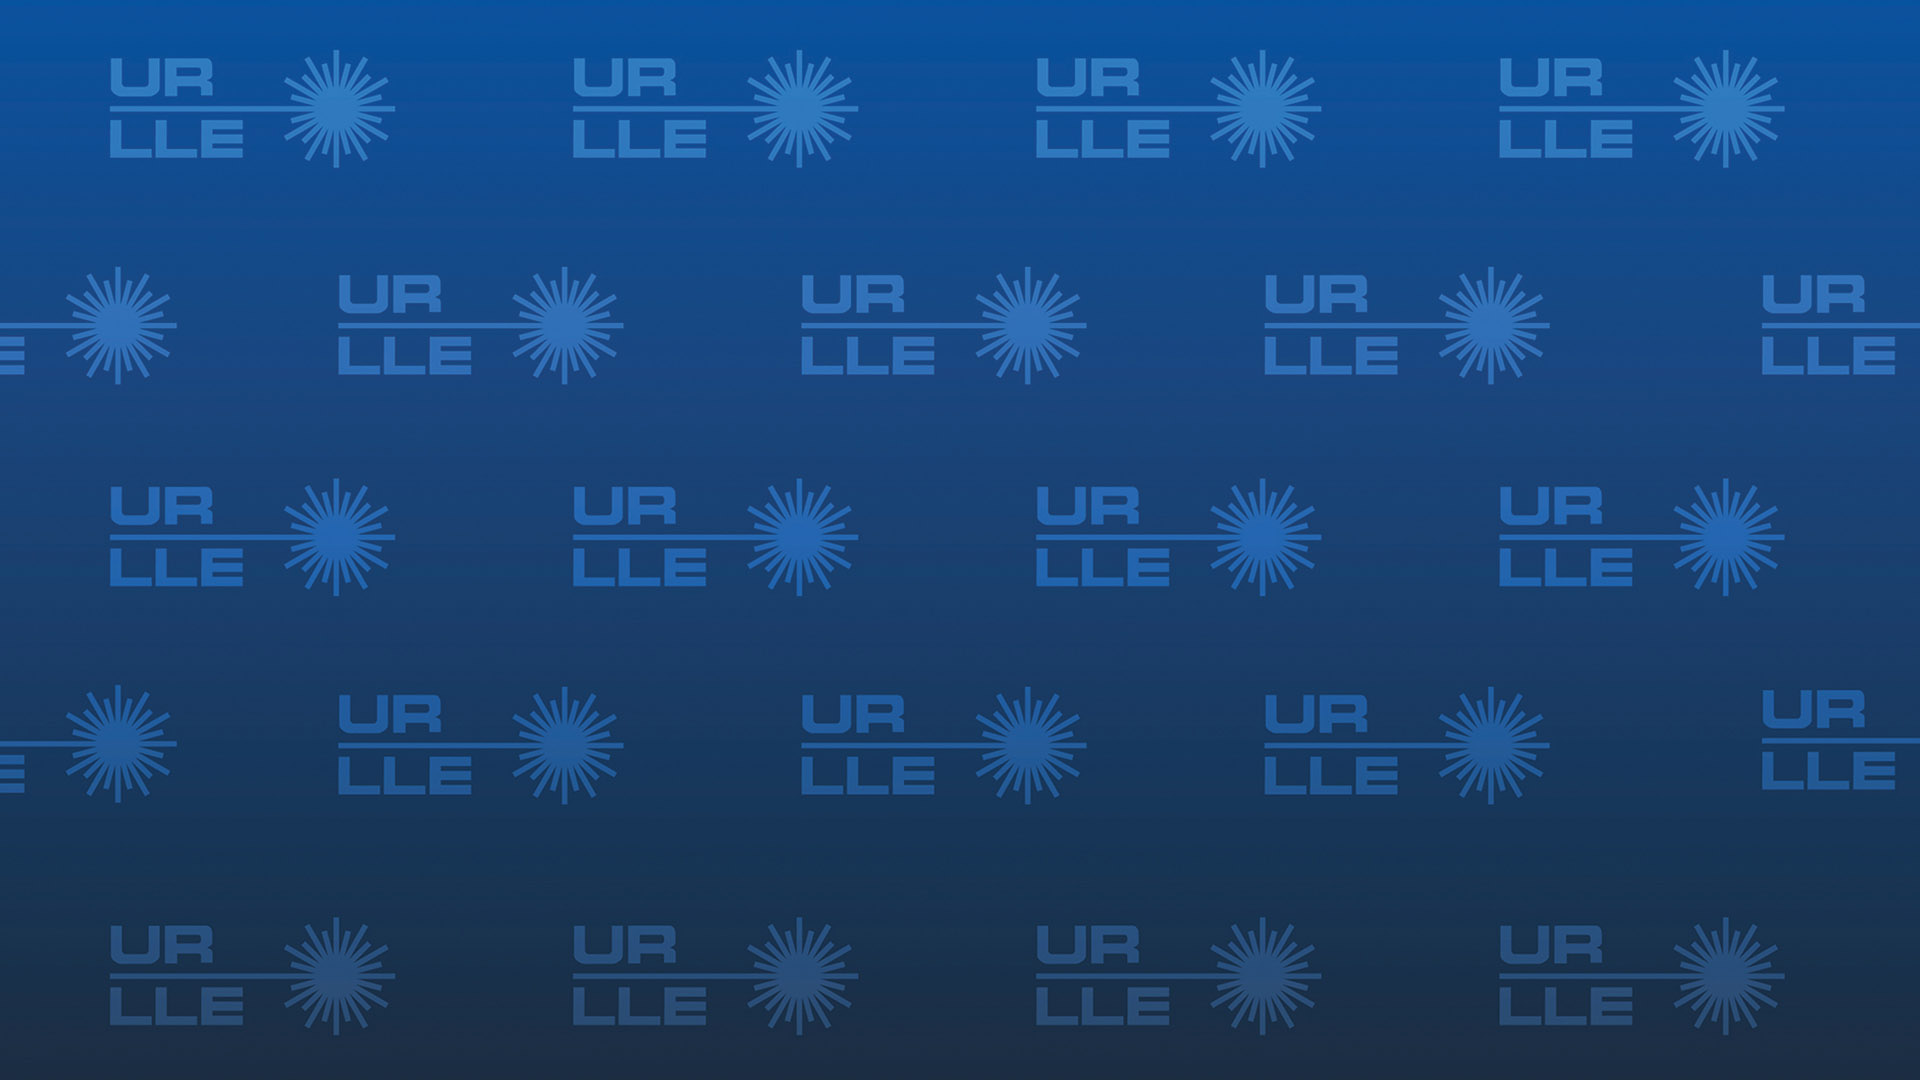 LLE Zoom background, blue with pattern of URLLE logos in the background